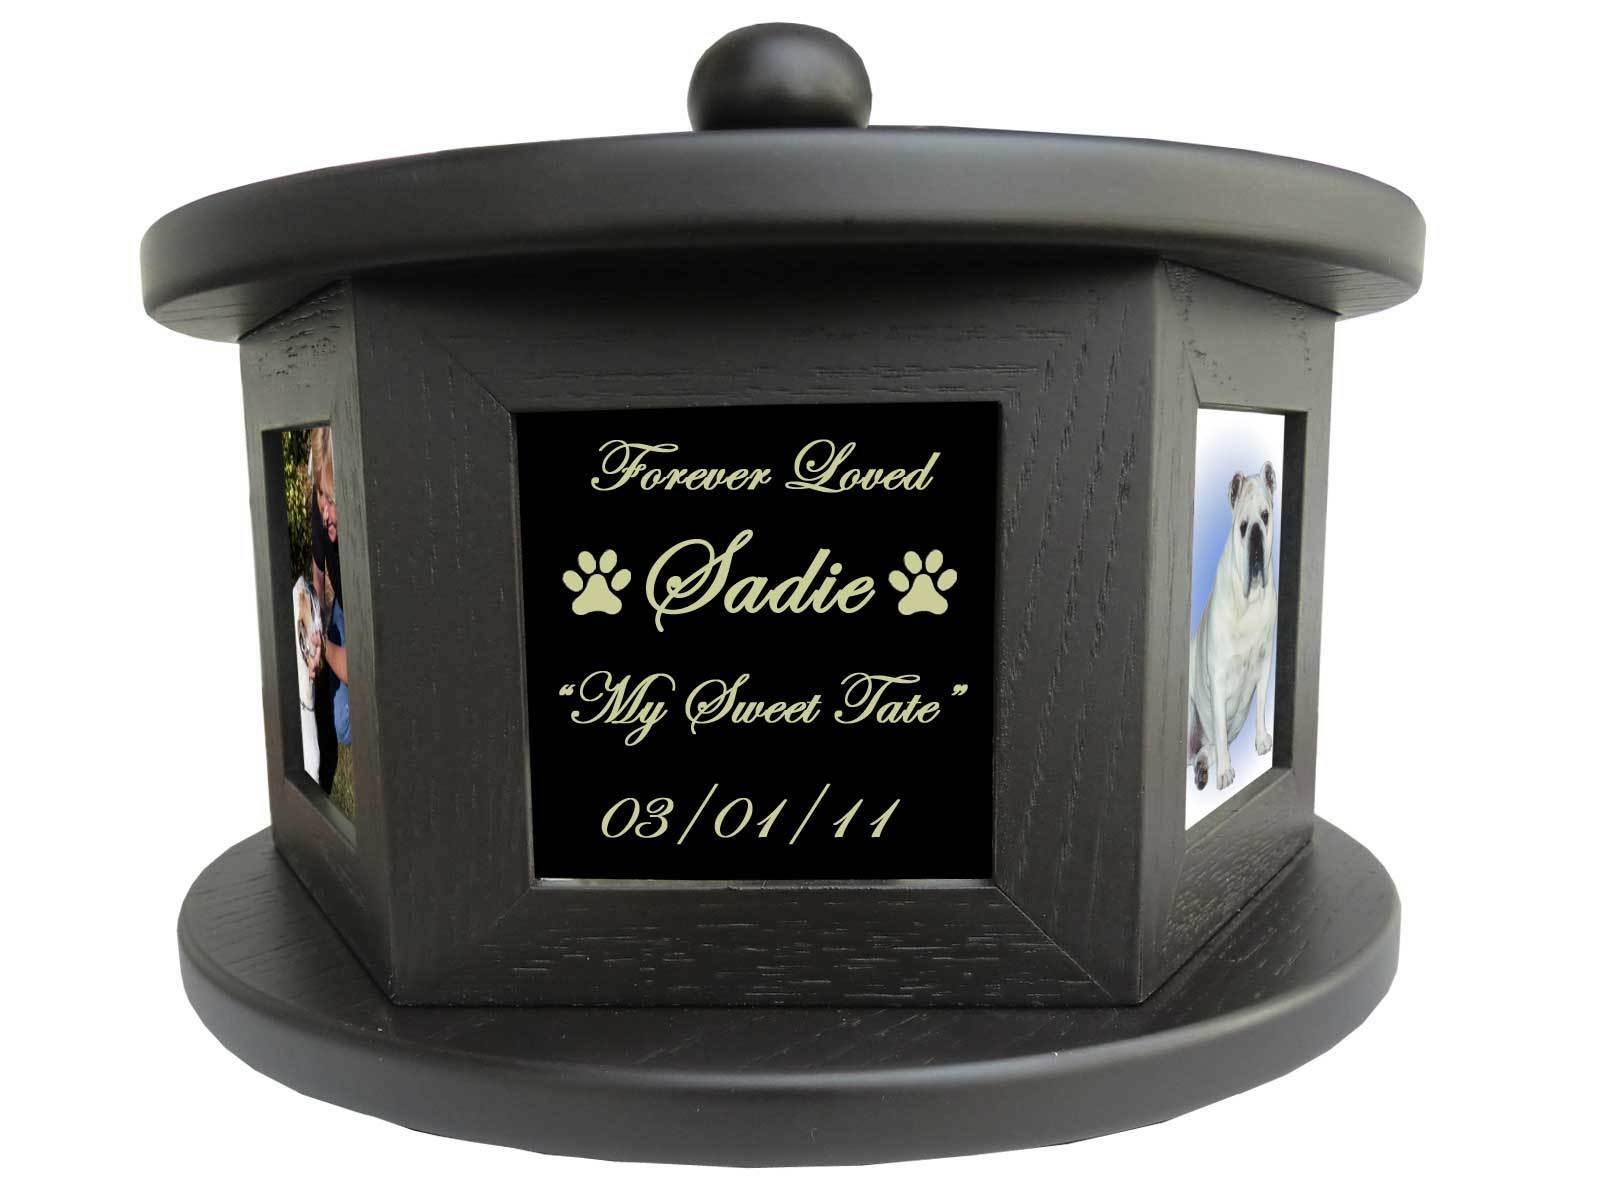 5 Photo rossoating Pet Cremation Urn - 100 lbs FREE Engraving nero Plate Dog Cat